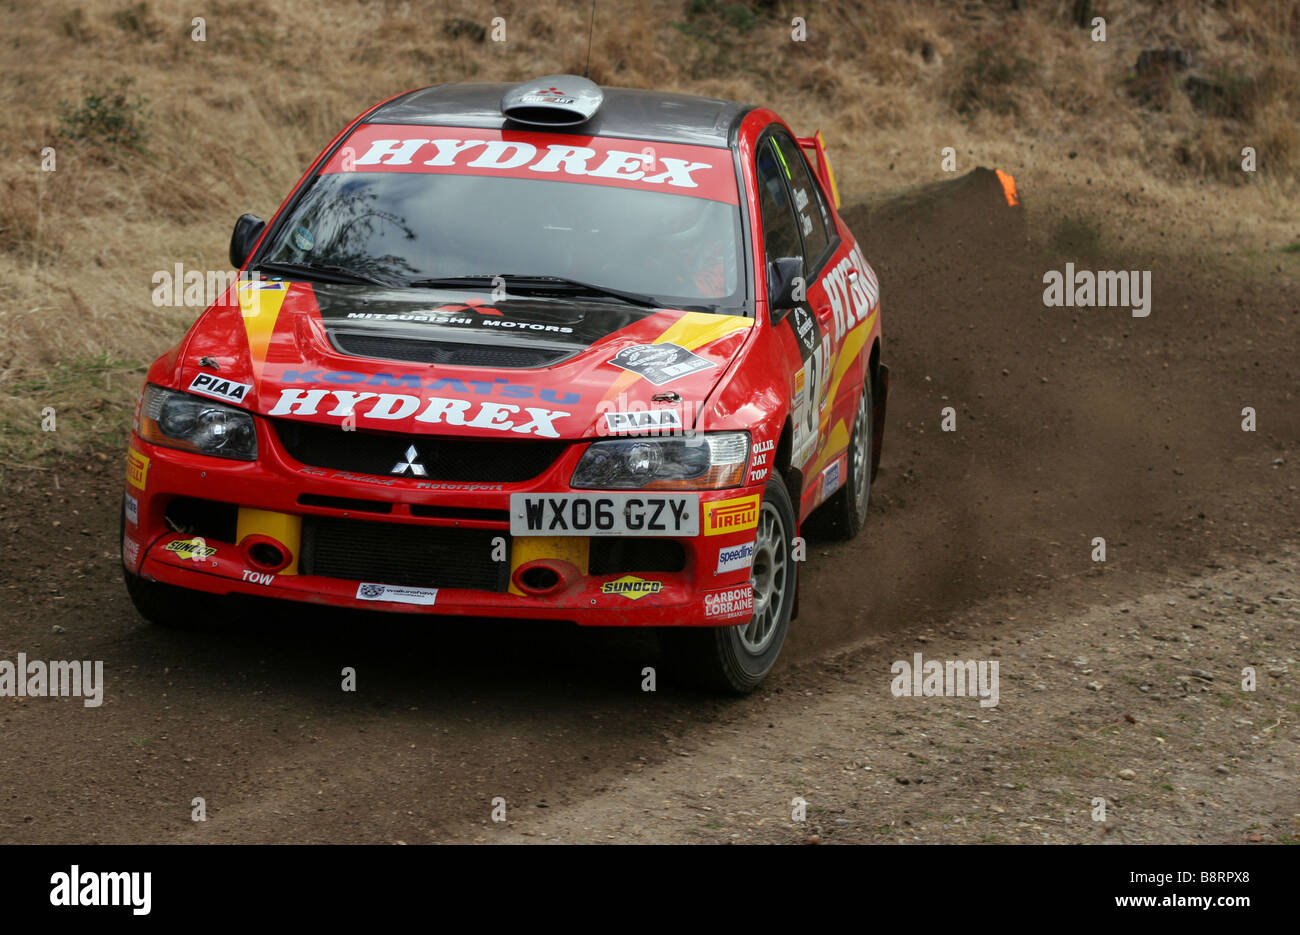 Action shot of rally car proforming at Rallye Sunseeker 2009 - Stock Image